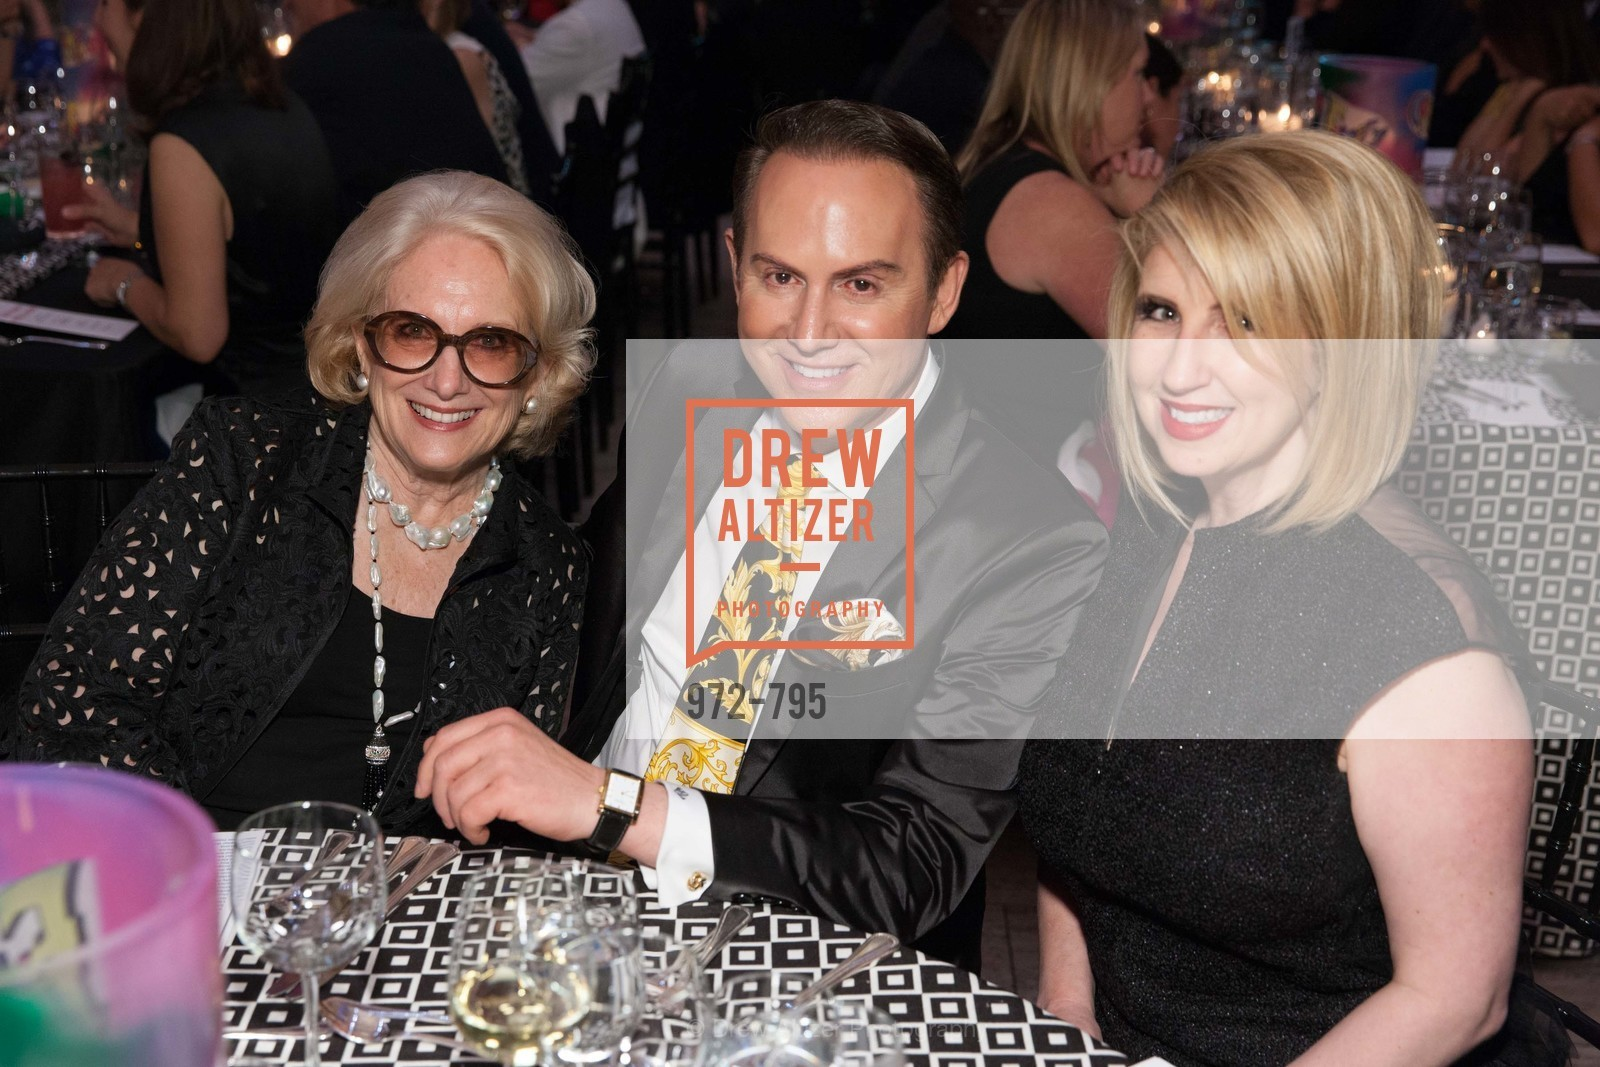 Cynthia Molstad, Joel Goodrich, Roberta Economidis, COMPASS FAMILY SERVICES Annual Spring Benefit:  Every Family Needs A Home, US, April 23rd, 2015,Drew Altizer, Drew Altizer Photography, full-service agency, private events, San Francisco photographer, photographer california